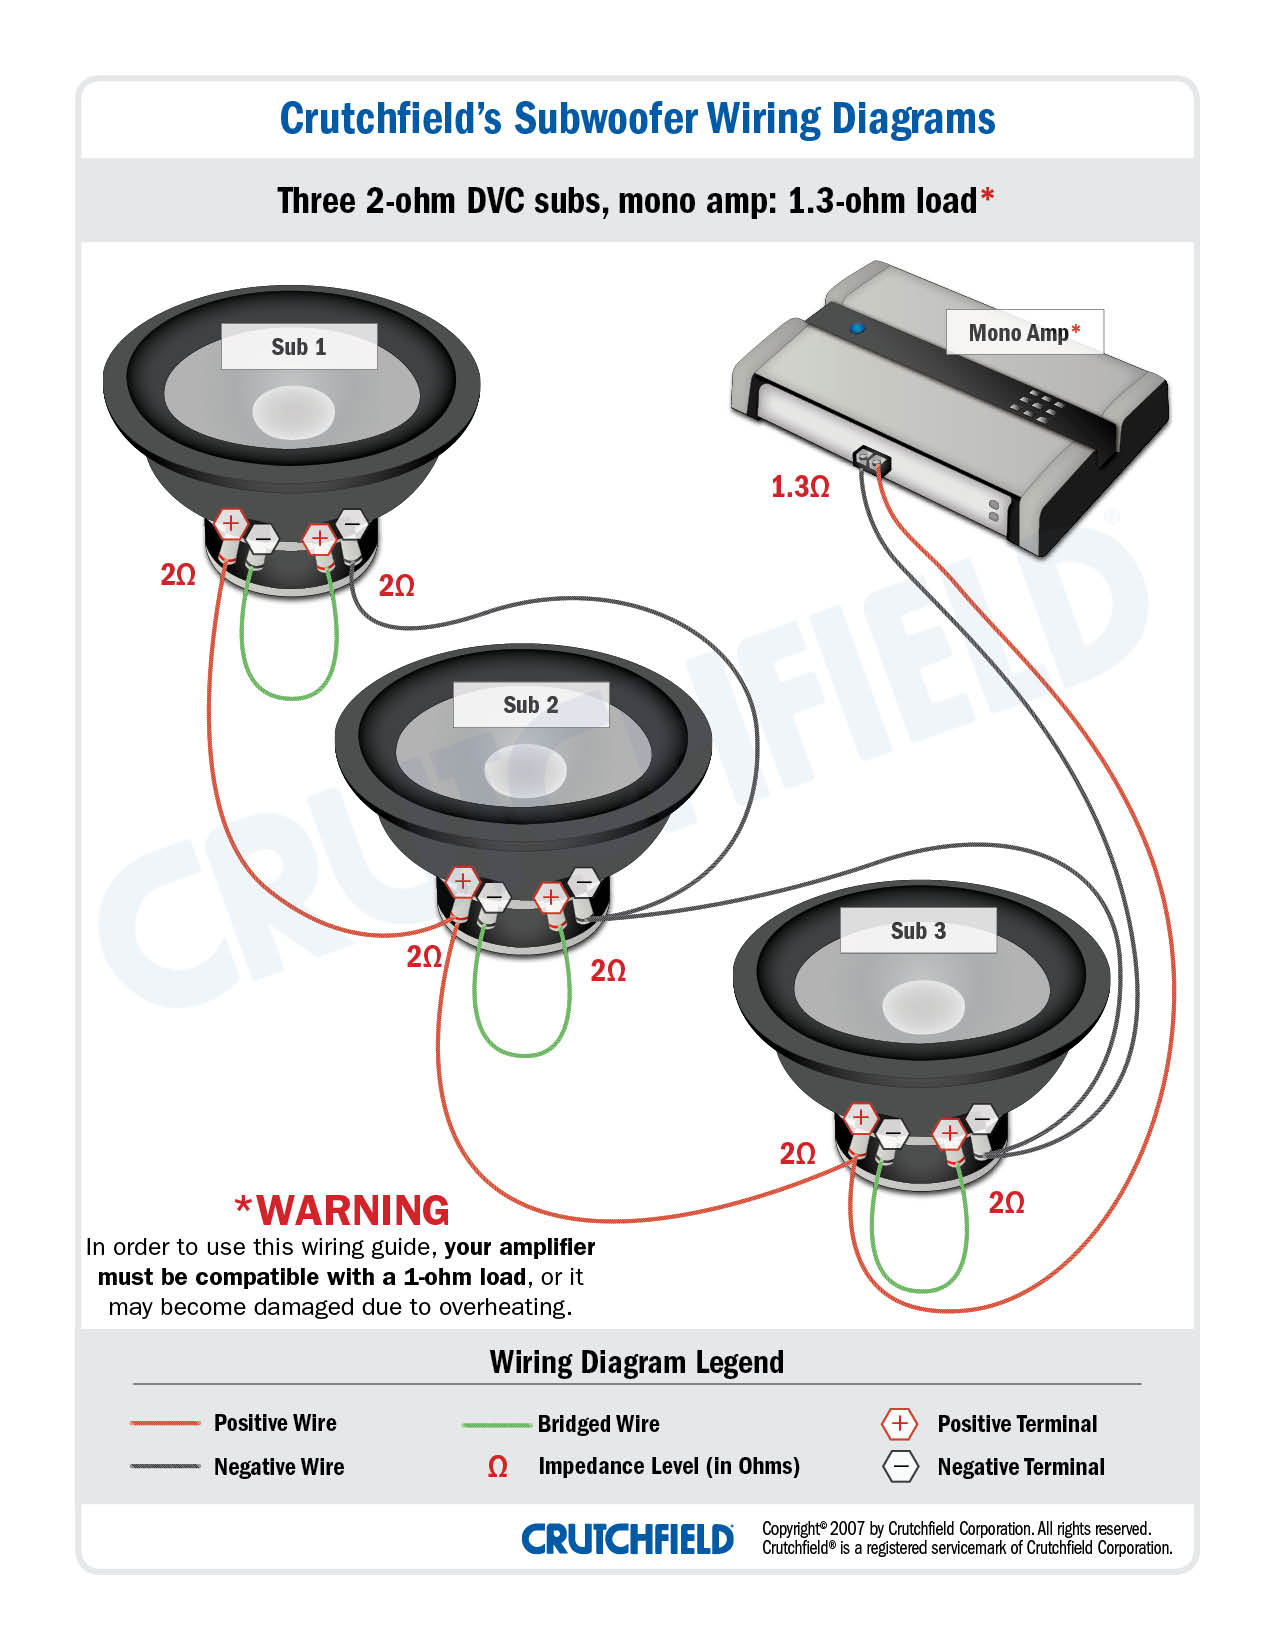 3 DVC 2 ohm mono low imp kicker l5 15 wiring diagram kicker l5 15 box specs \u2022 wiring kicker l7 15 2 ohm wiring diagram at aneh.co